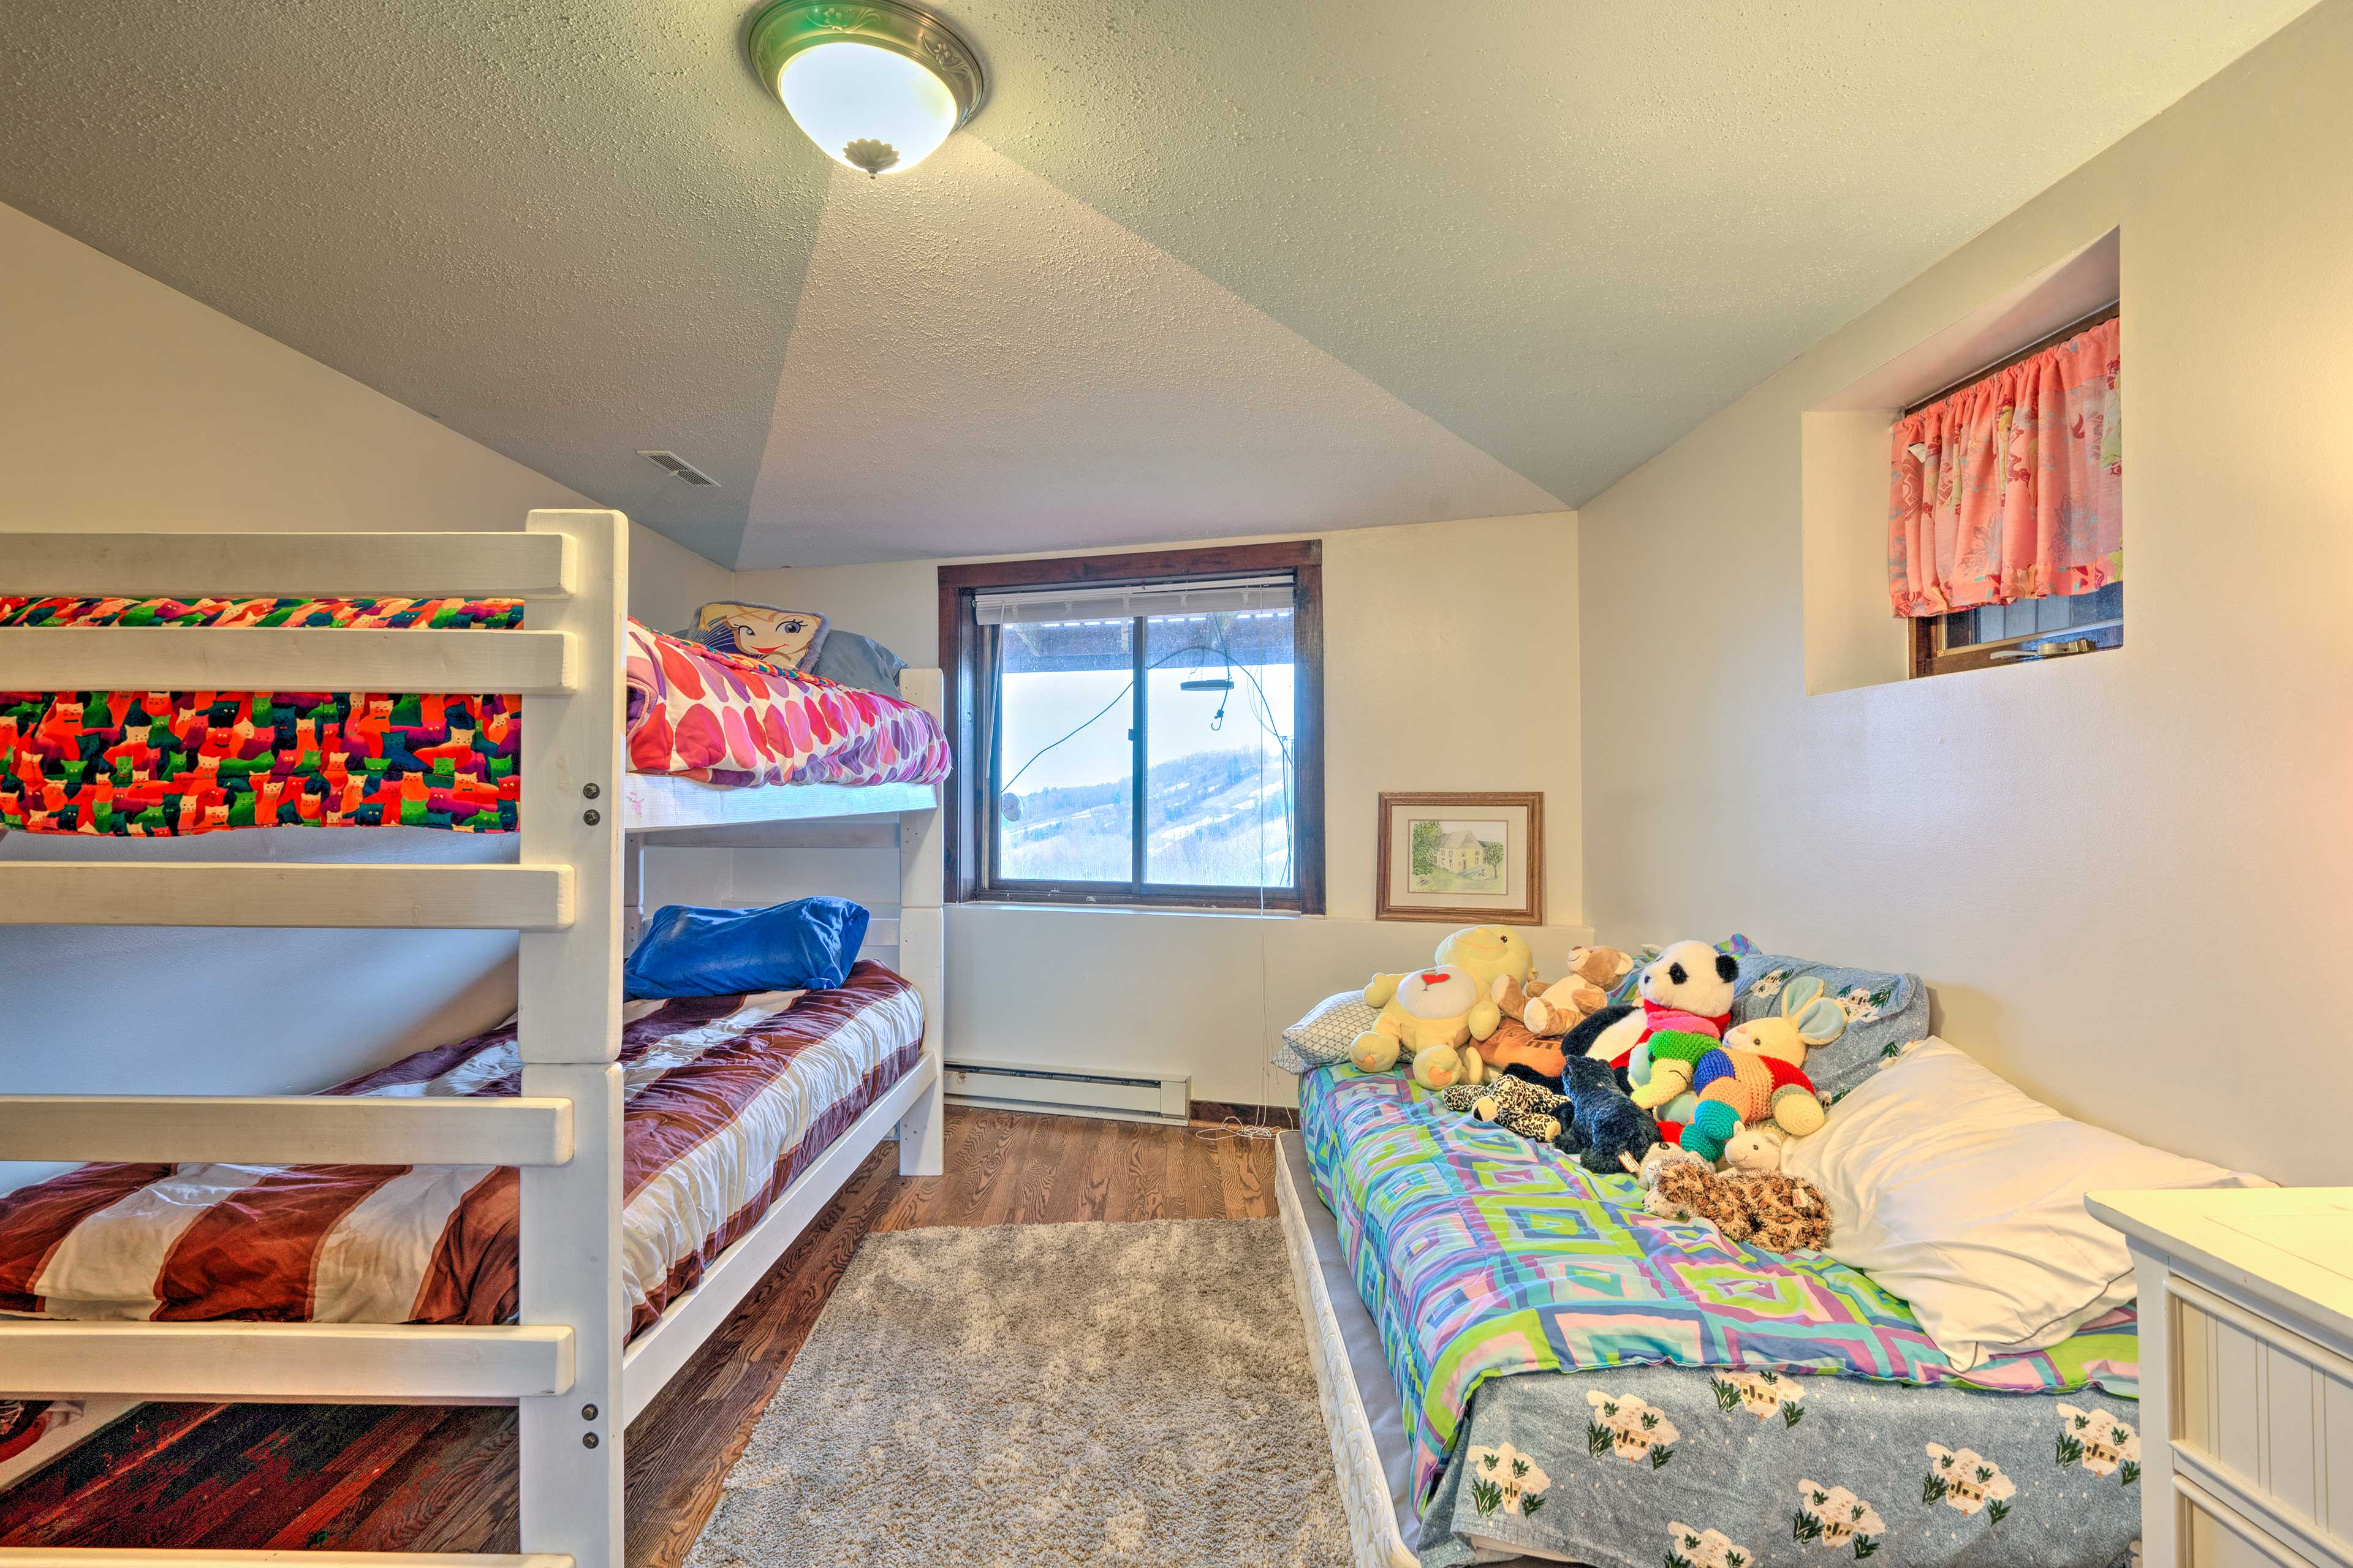 This room will be perfect for the kiddos.